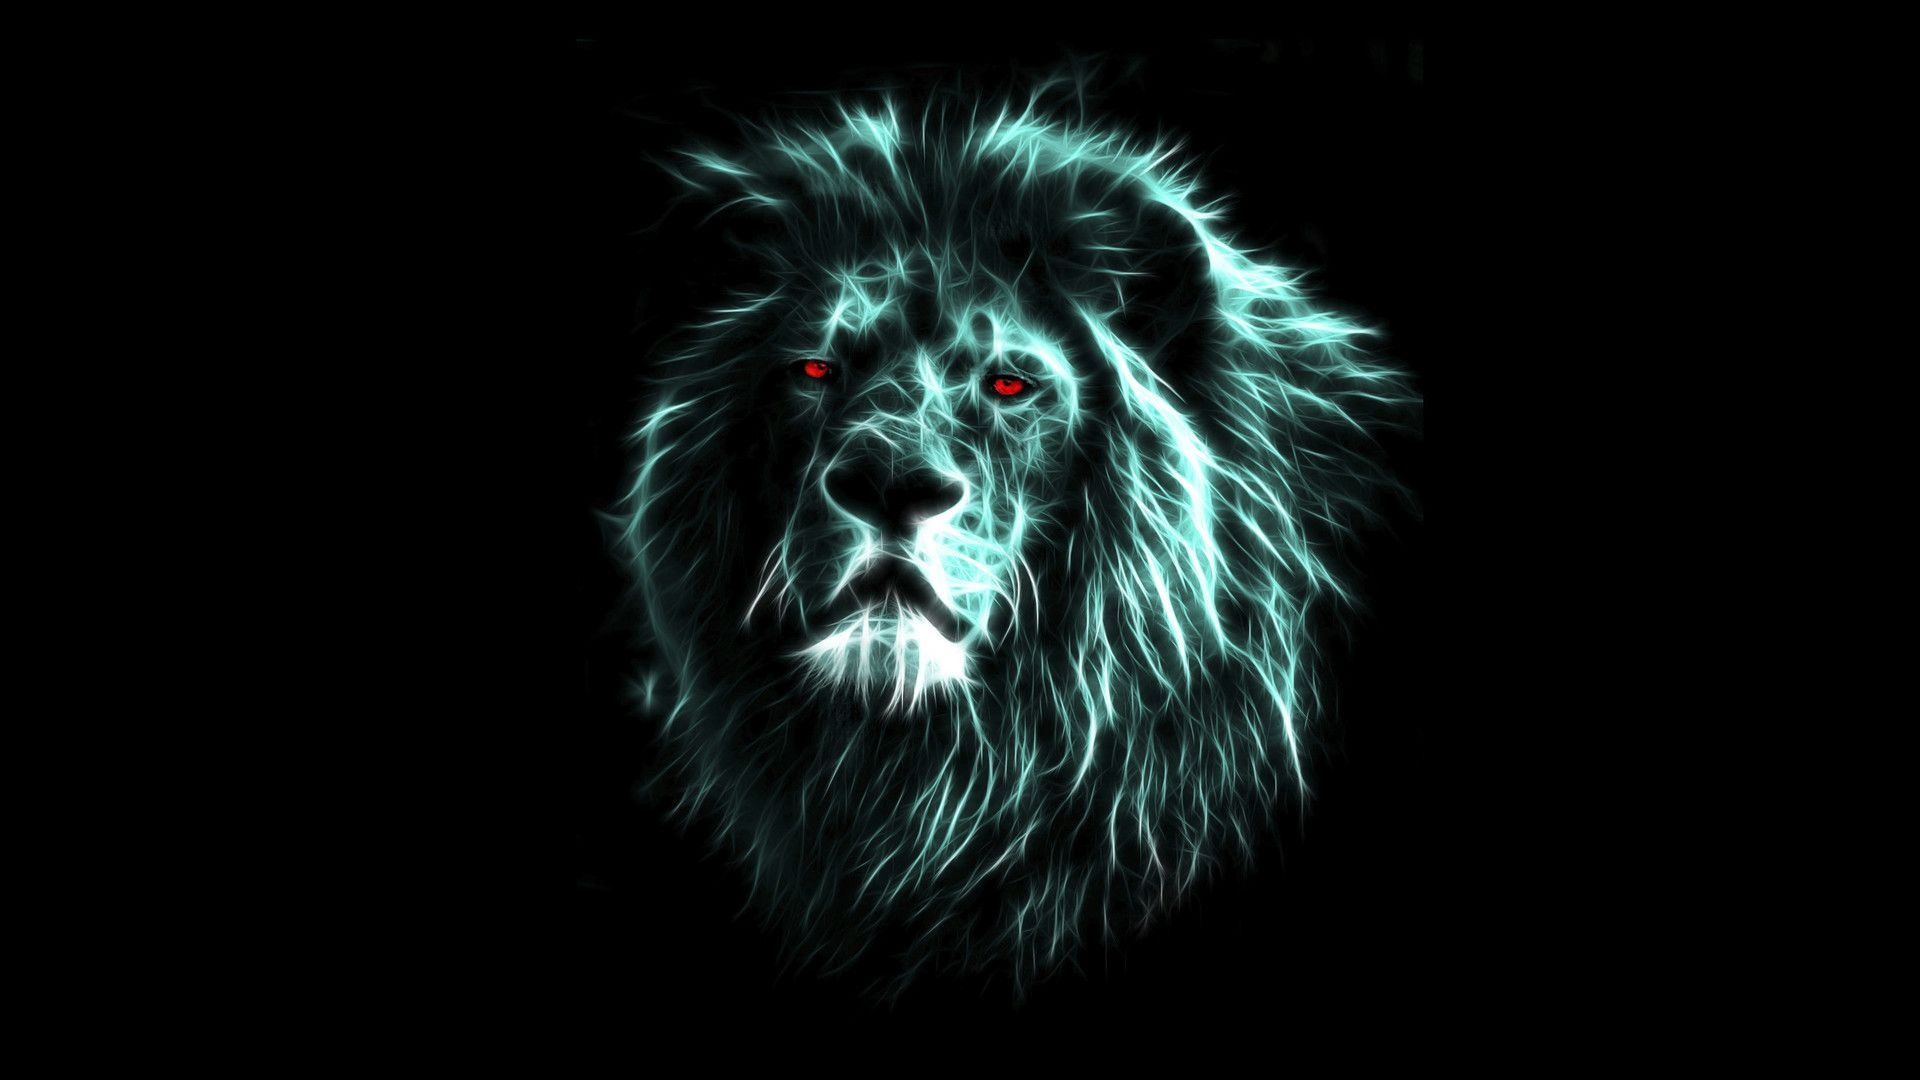 Abstract Lion Iphone Wallpaper Hd Wallpaper In 2020 Lion Hd Wallpaper Lion Wallpaper Abstract Lion